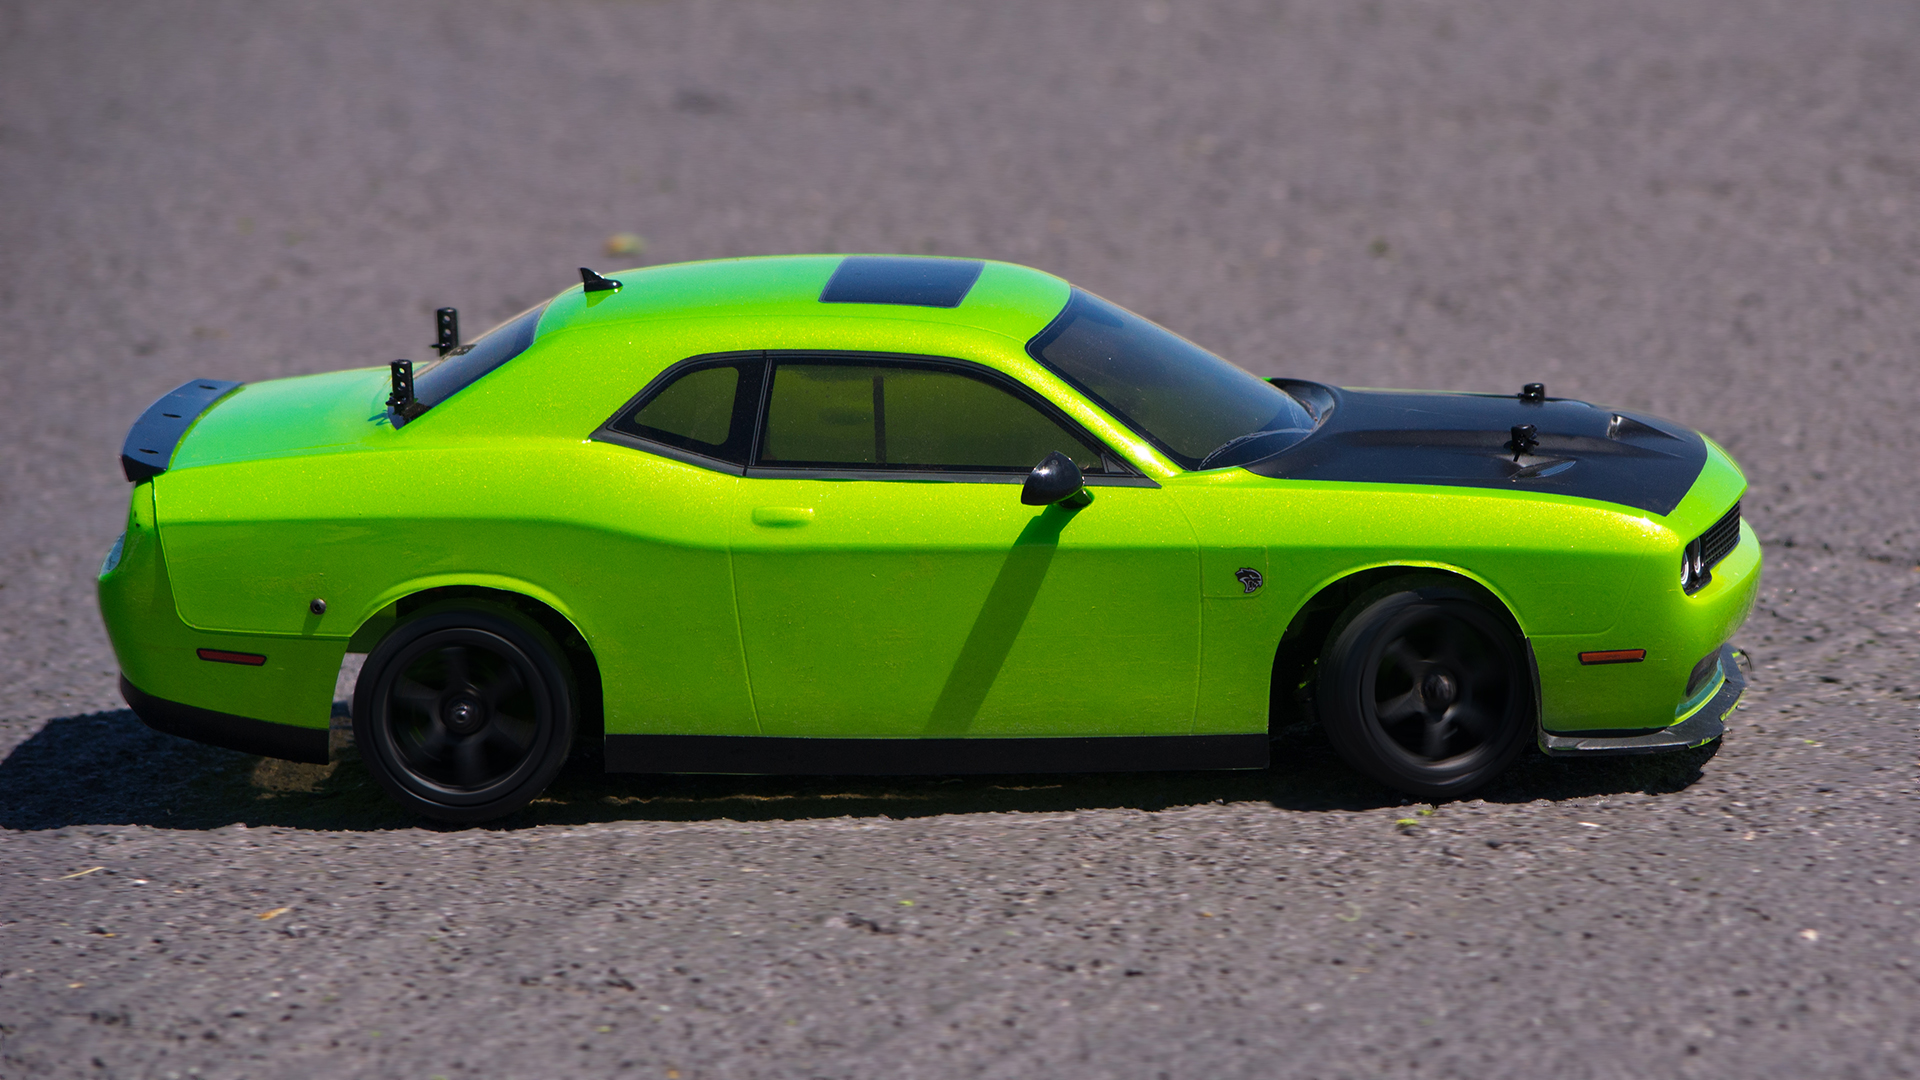 How To Get Into Hobby Rc Exploring Rc Drift Cars  Tested